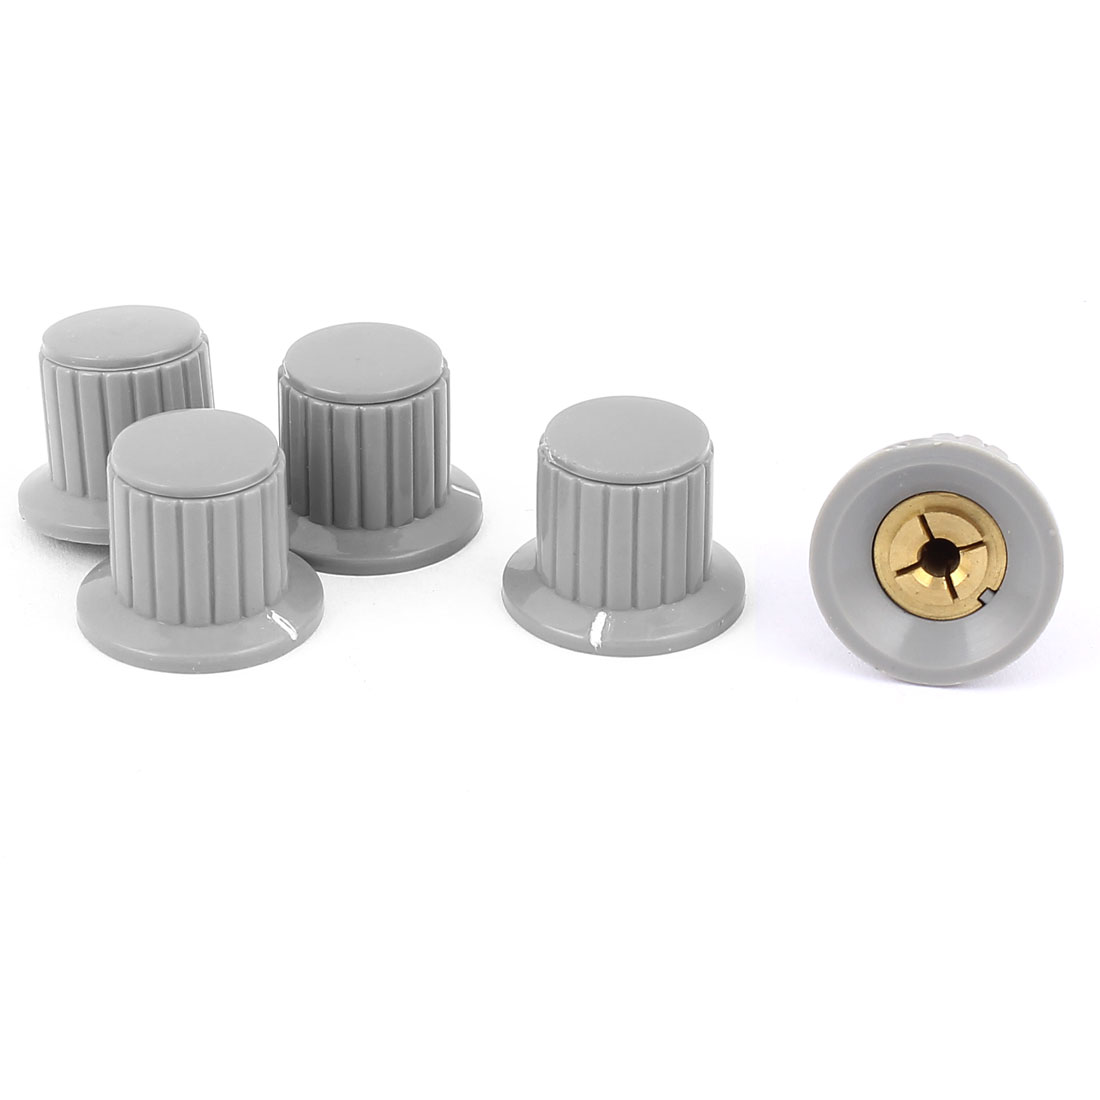 5 Pcs Volume Control Rotary Knobs For 5mm Dia Knurled Shaft Potentiometer Durable Gray